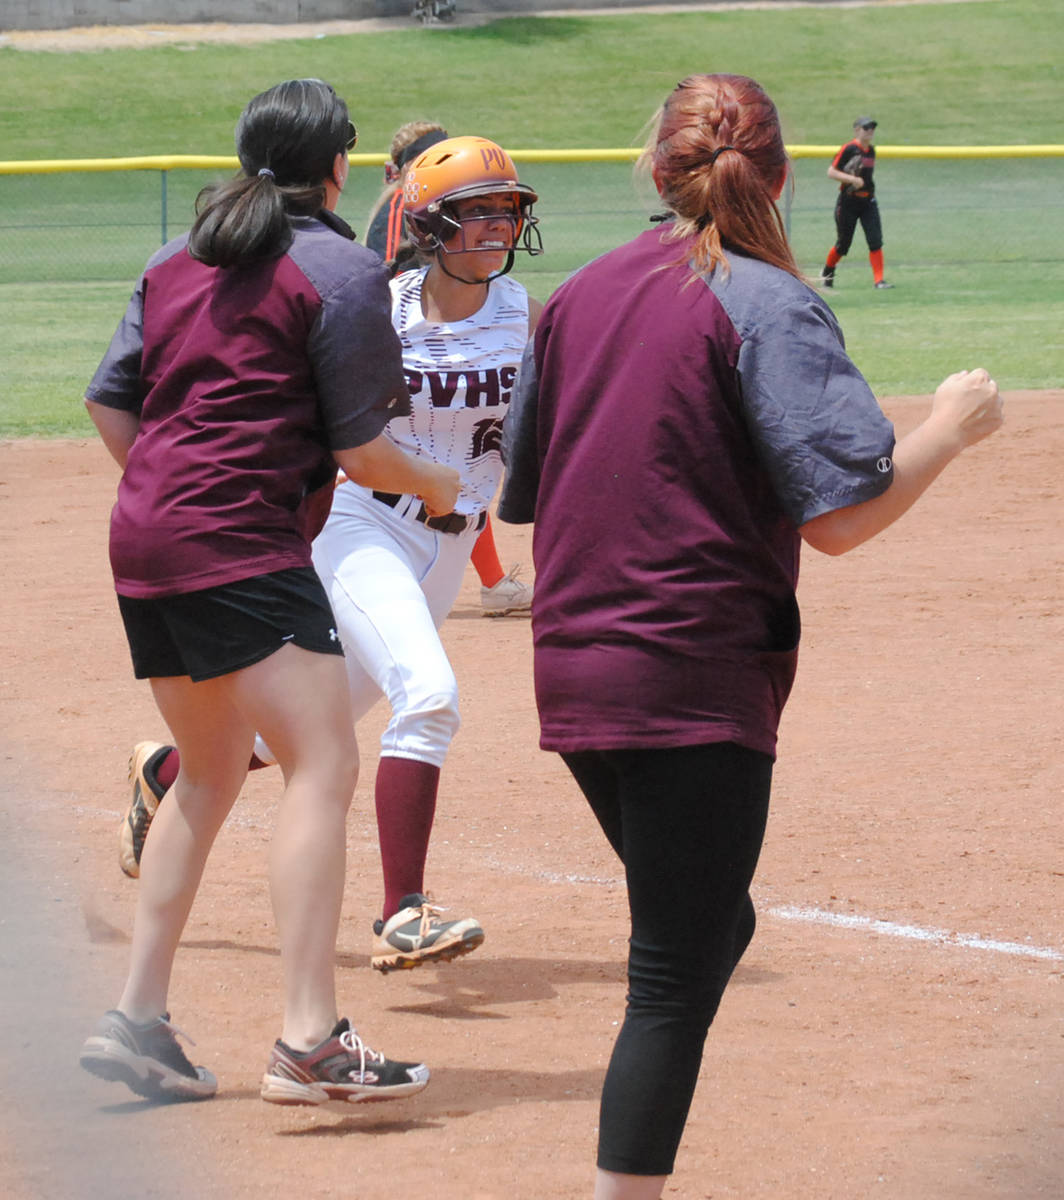 Cassondra Lauver/Special to the Pahrump Valley Times Kaden Cable, shown rounding third after hi ...